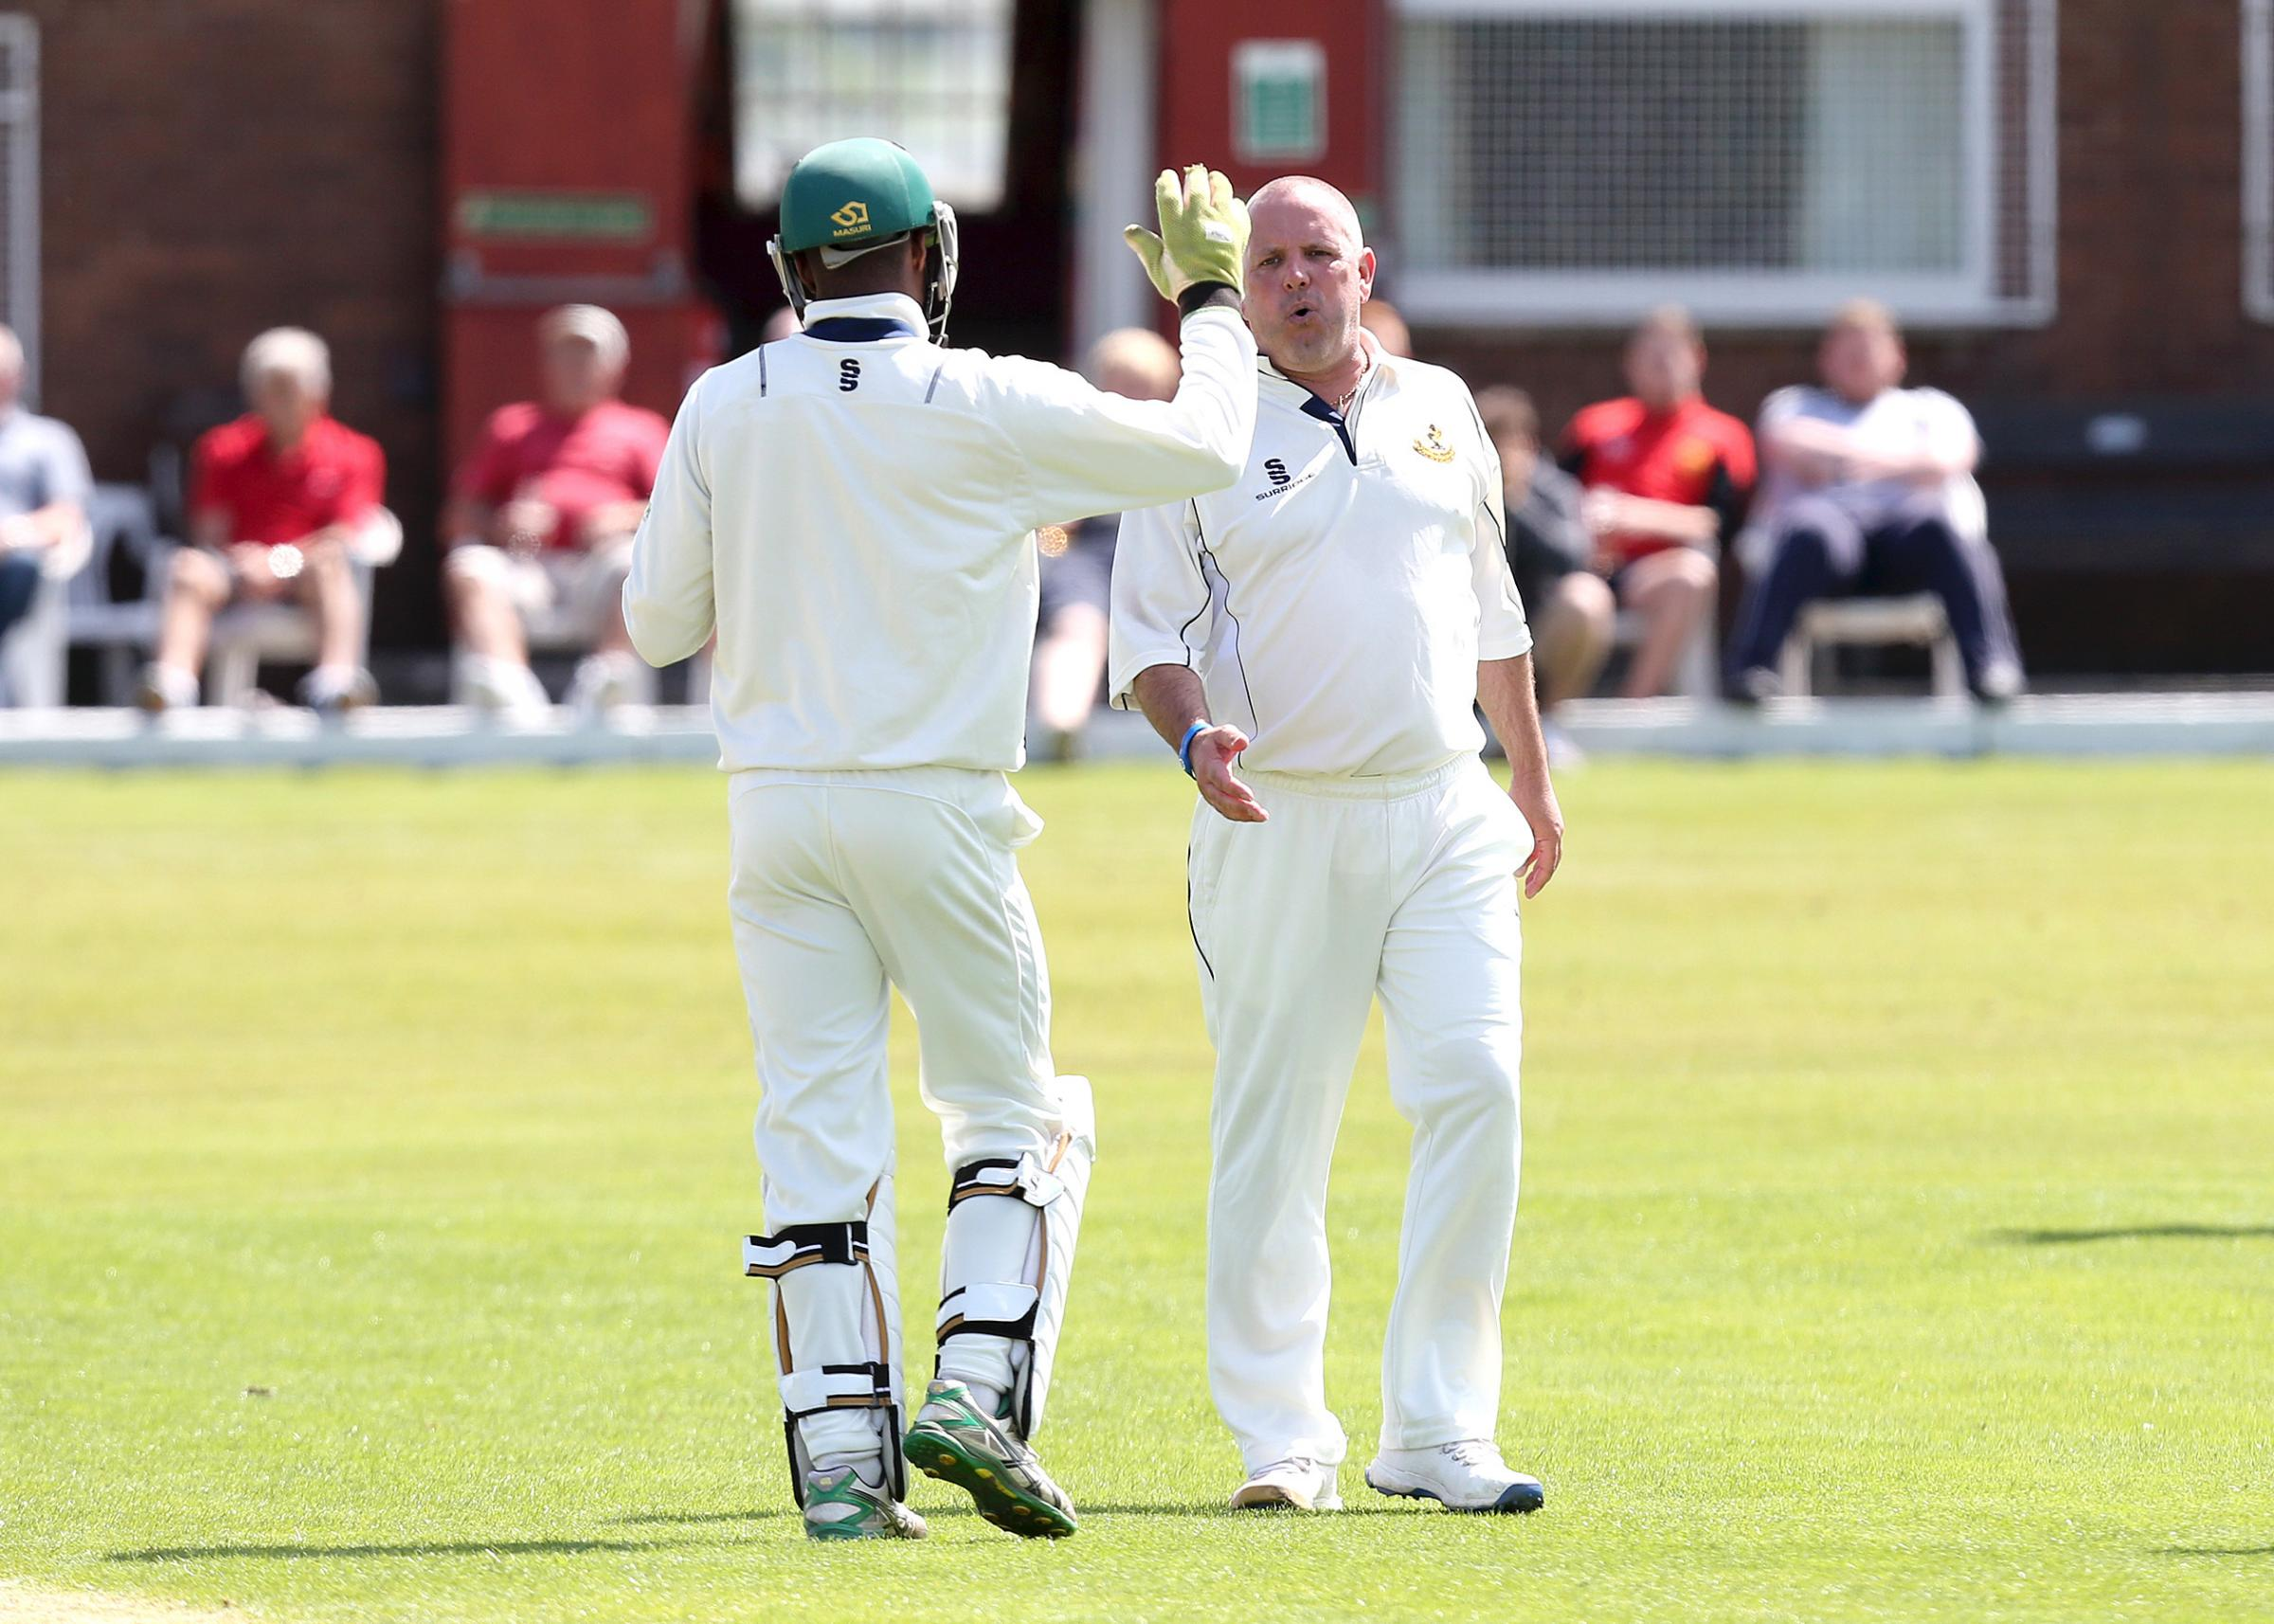 Ribblesdale Wanderers Ian Britcliffe celebrates the wicket of Baxenden's Gary Sudworth